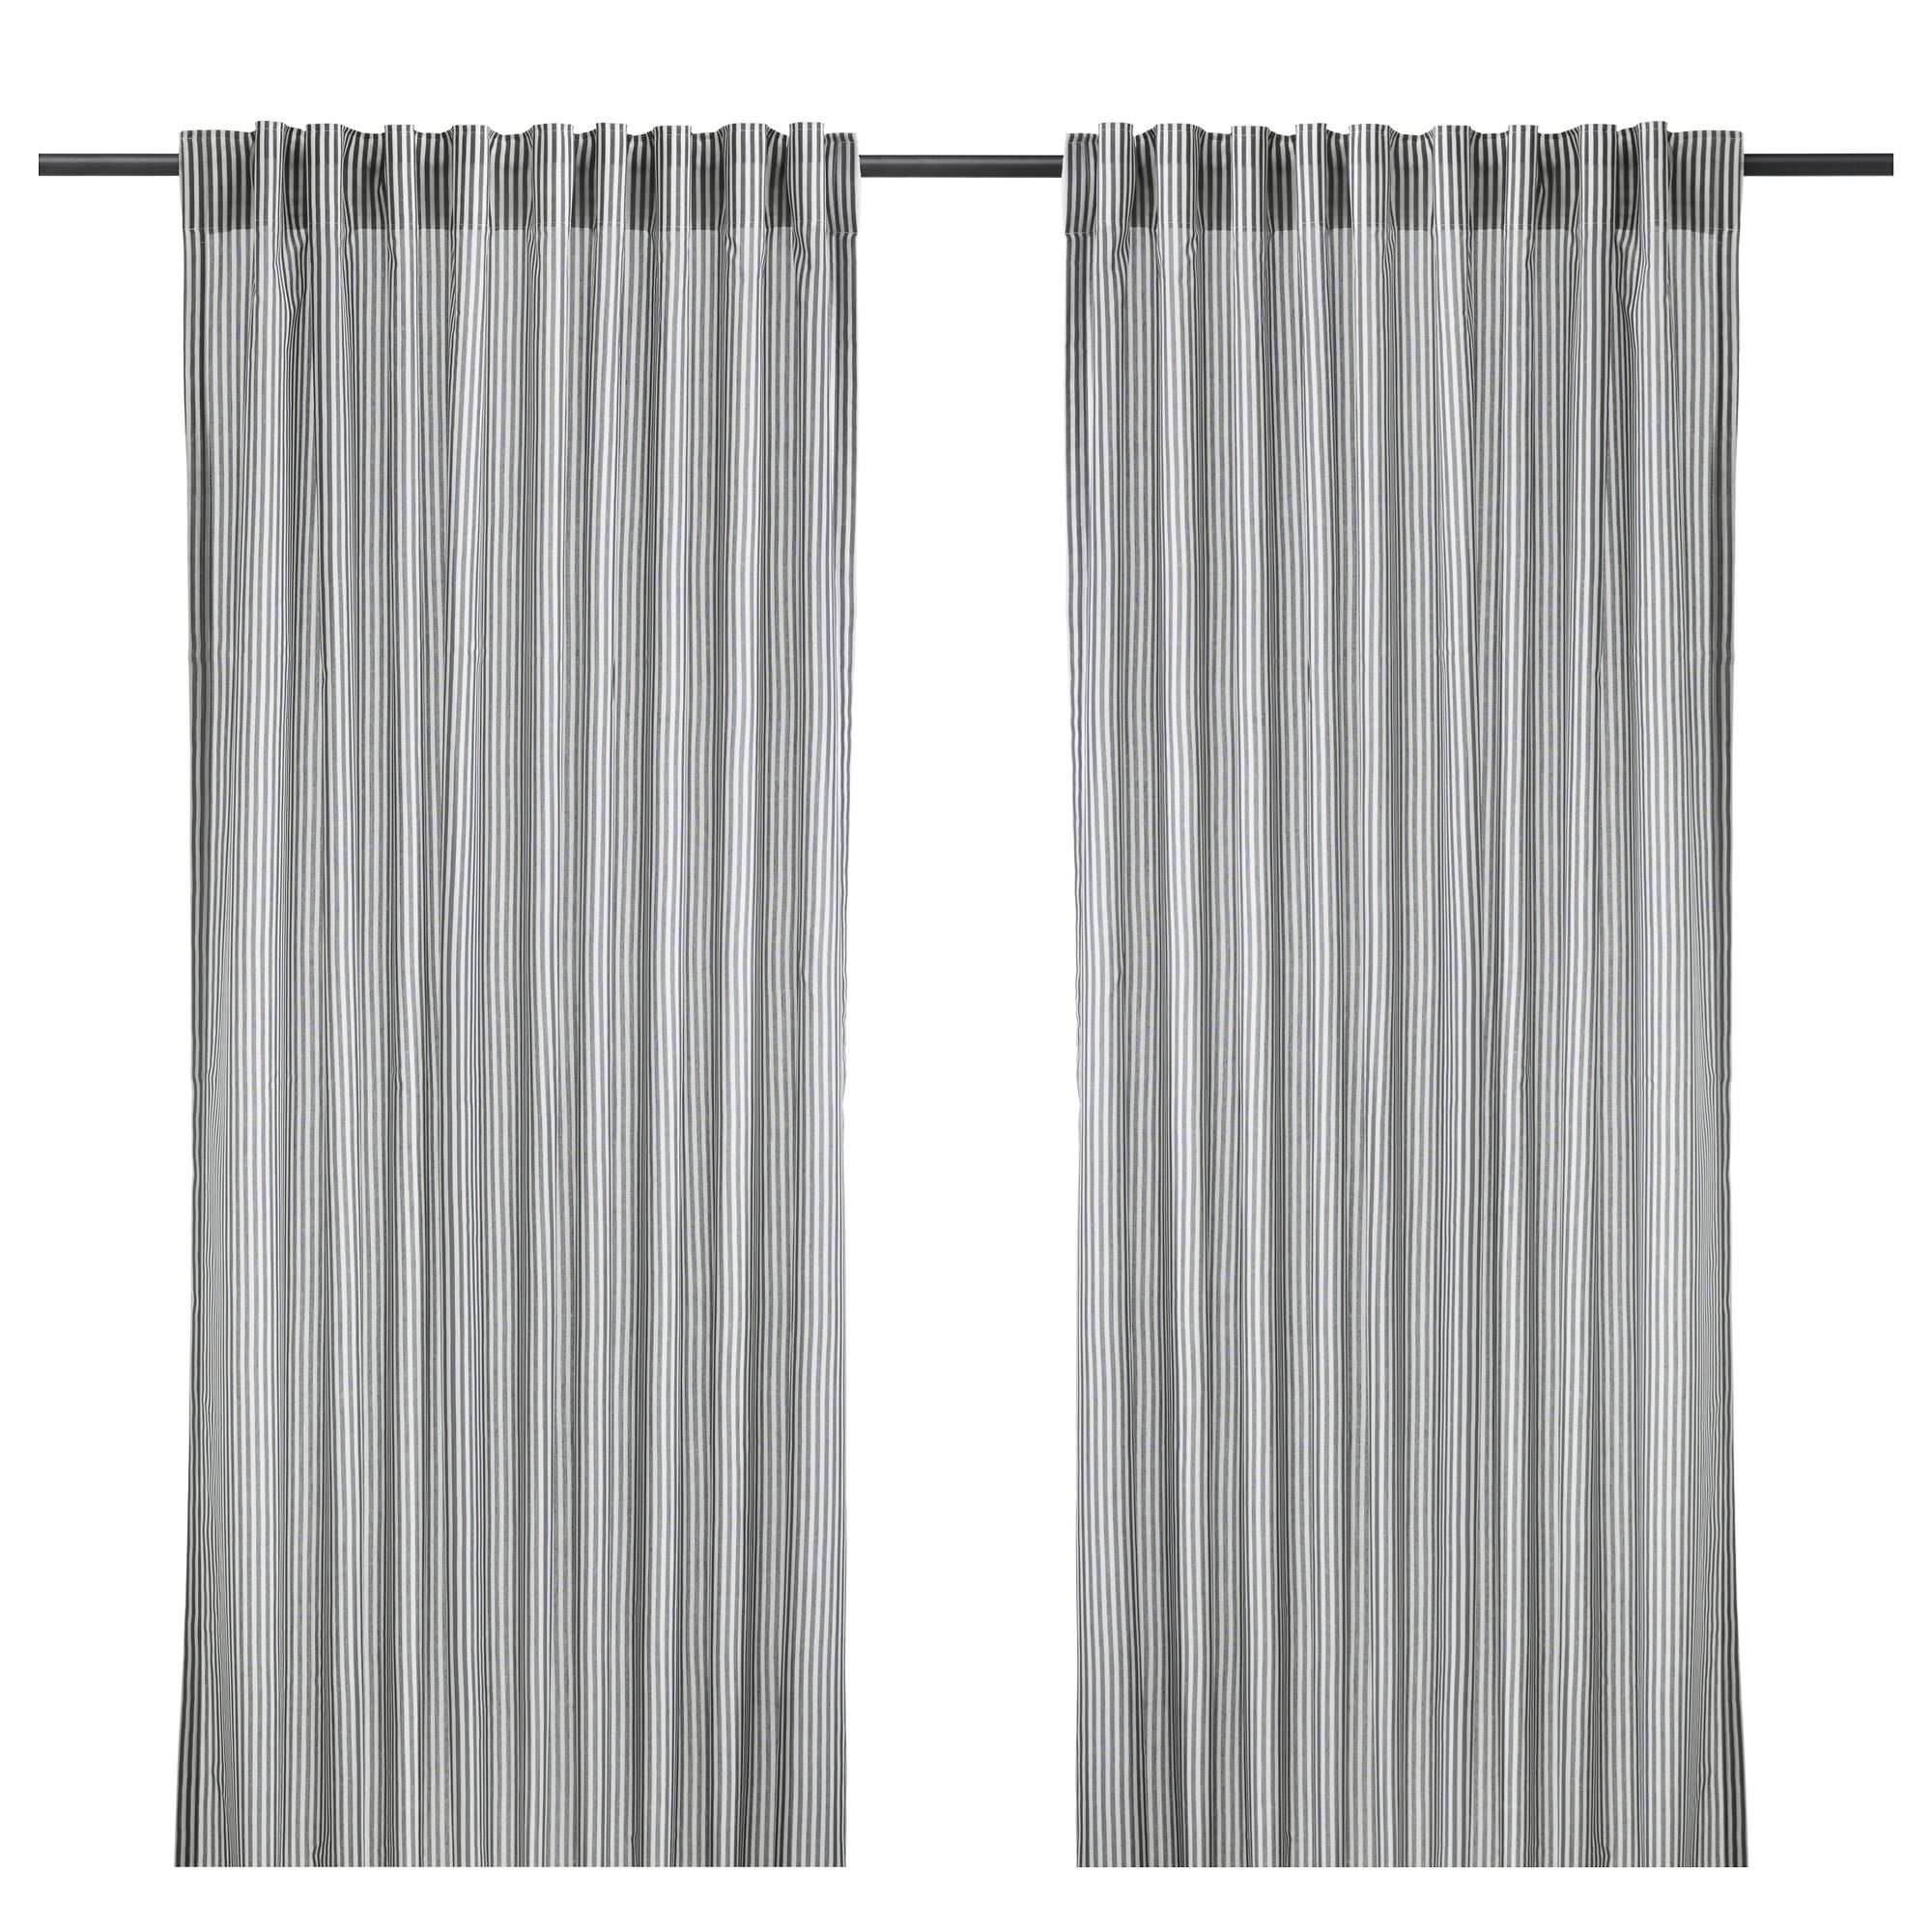 idea energy choose blackout your samara white as efficient best light sears curt ideas kids grey eclipse wonderful curtain target costco curtains